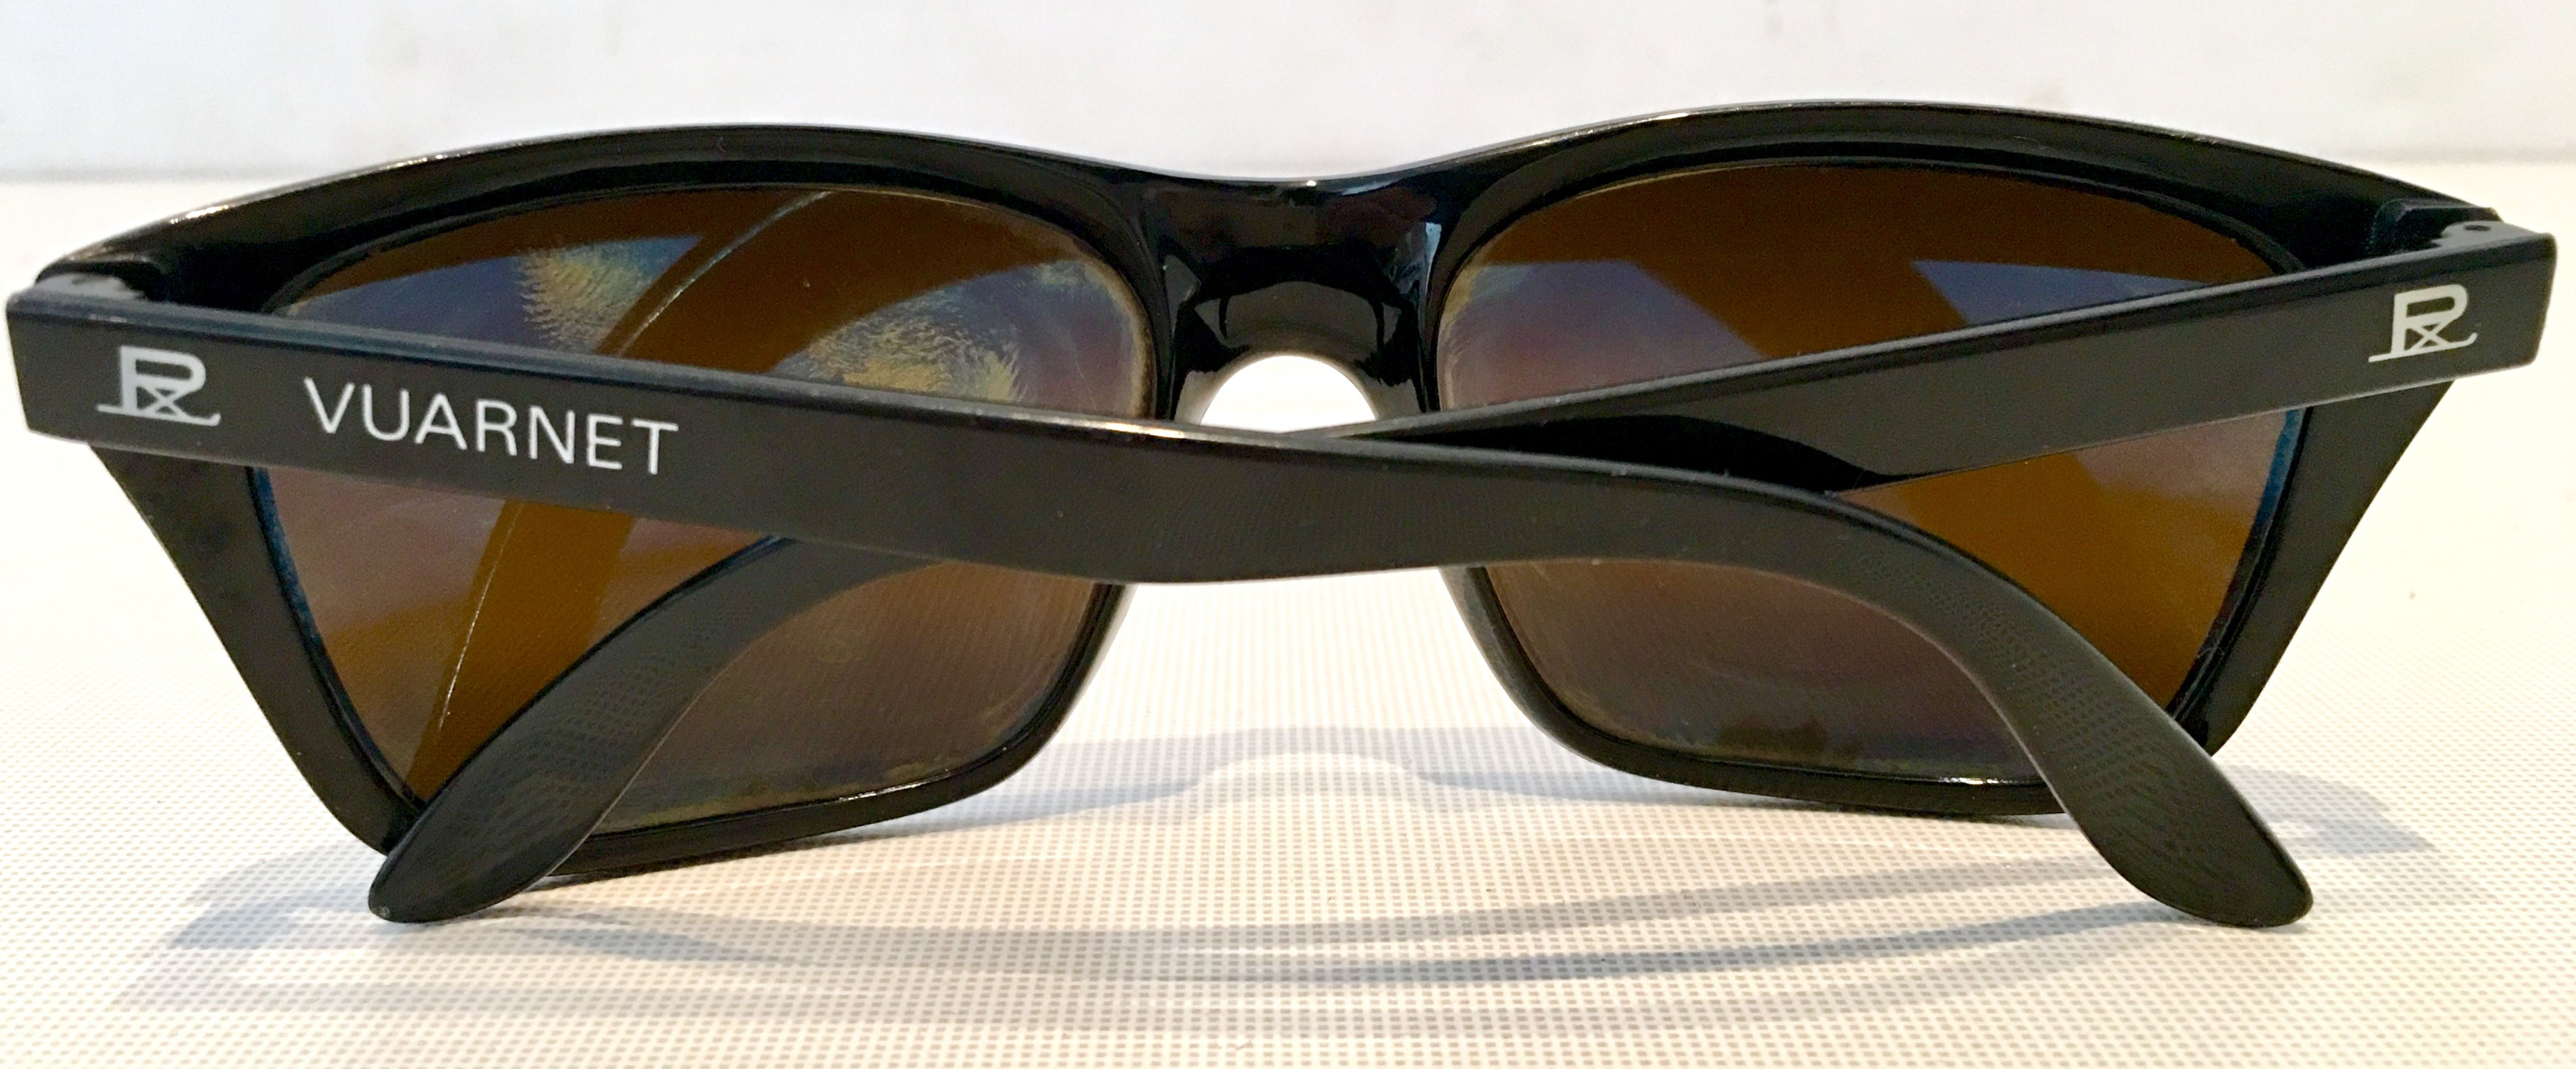 53f152547f 80 S Vuarnet France Black and Brown Mineral Poloarized Sunglasses For Sale  at 1stdibs